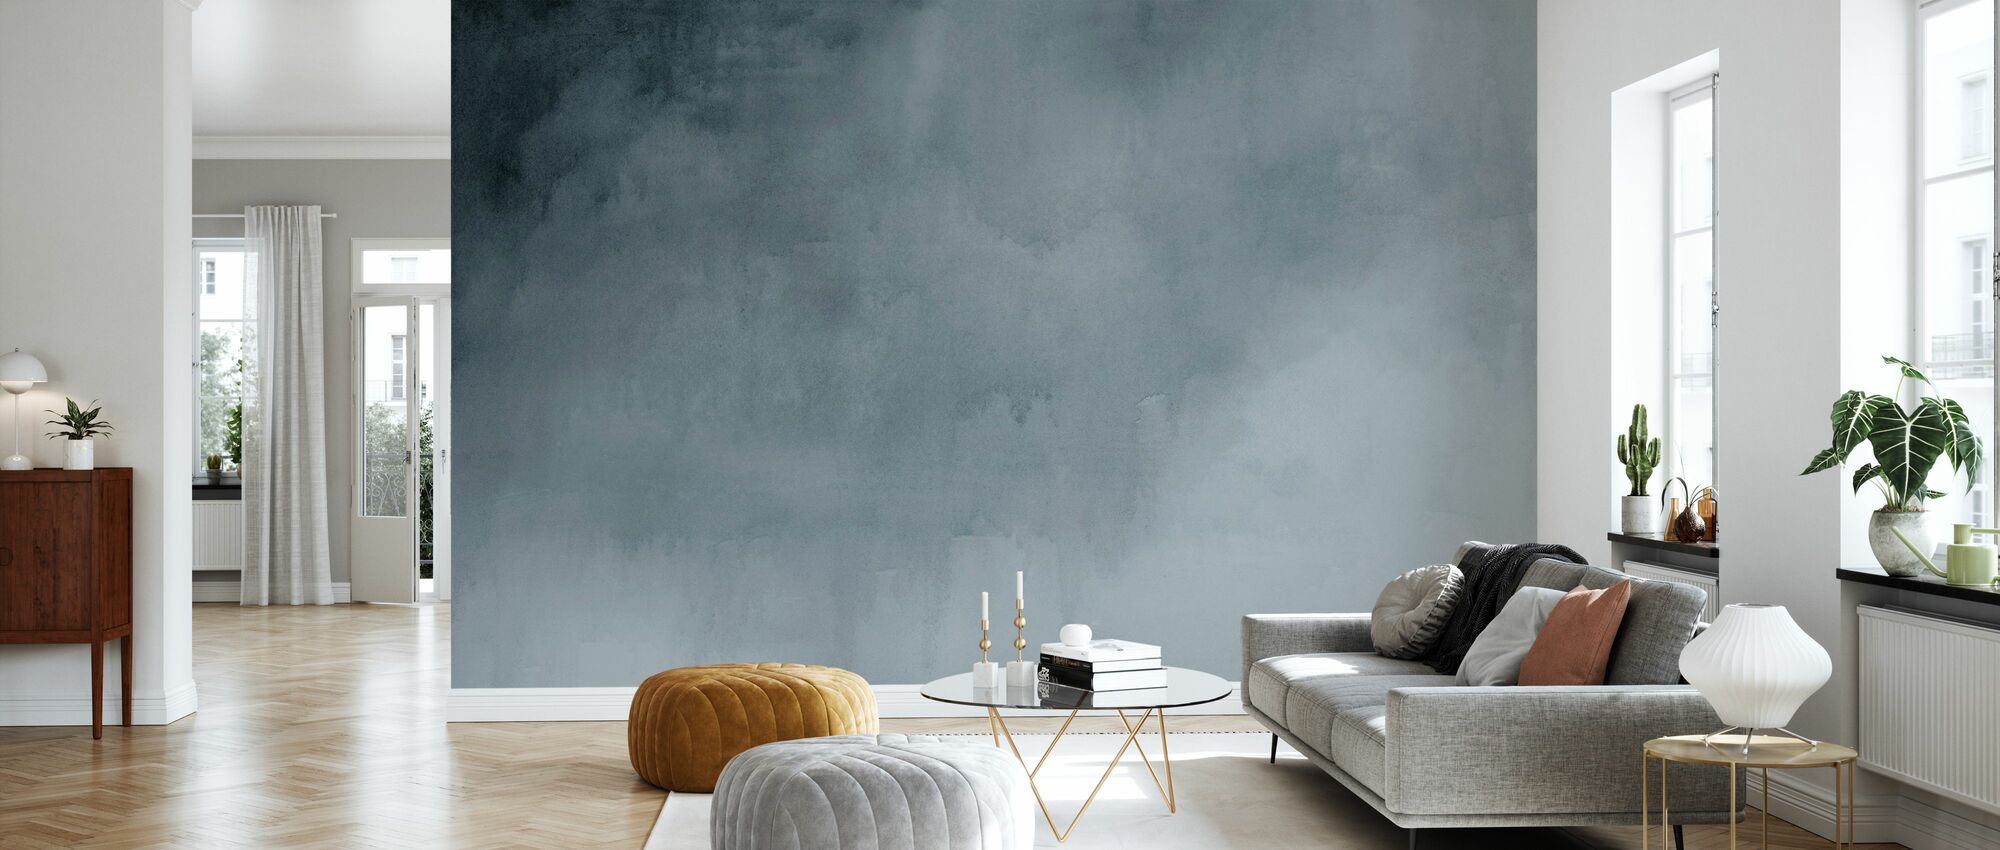 Watercolour - Paynes Grey - Wallpaper - Living Room